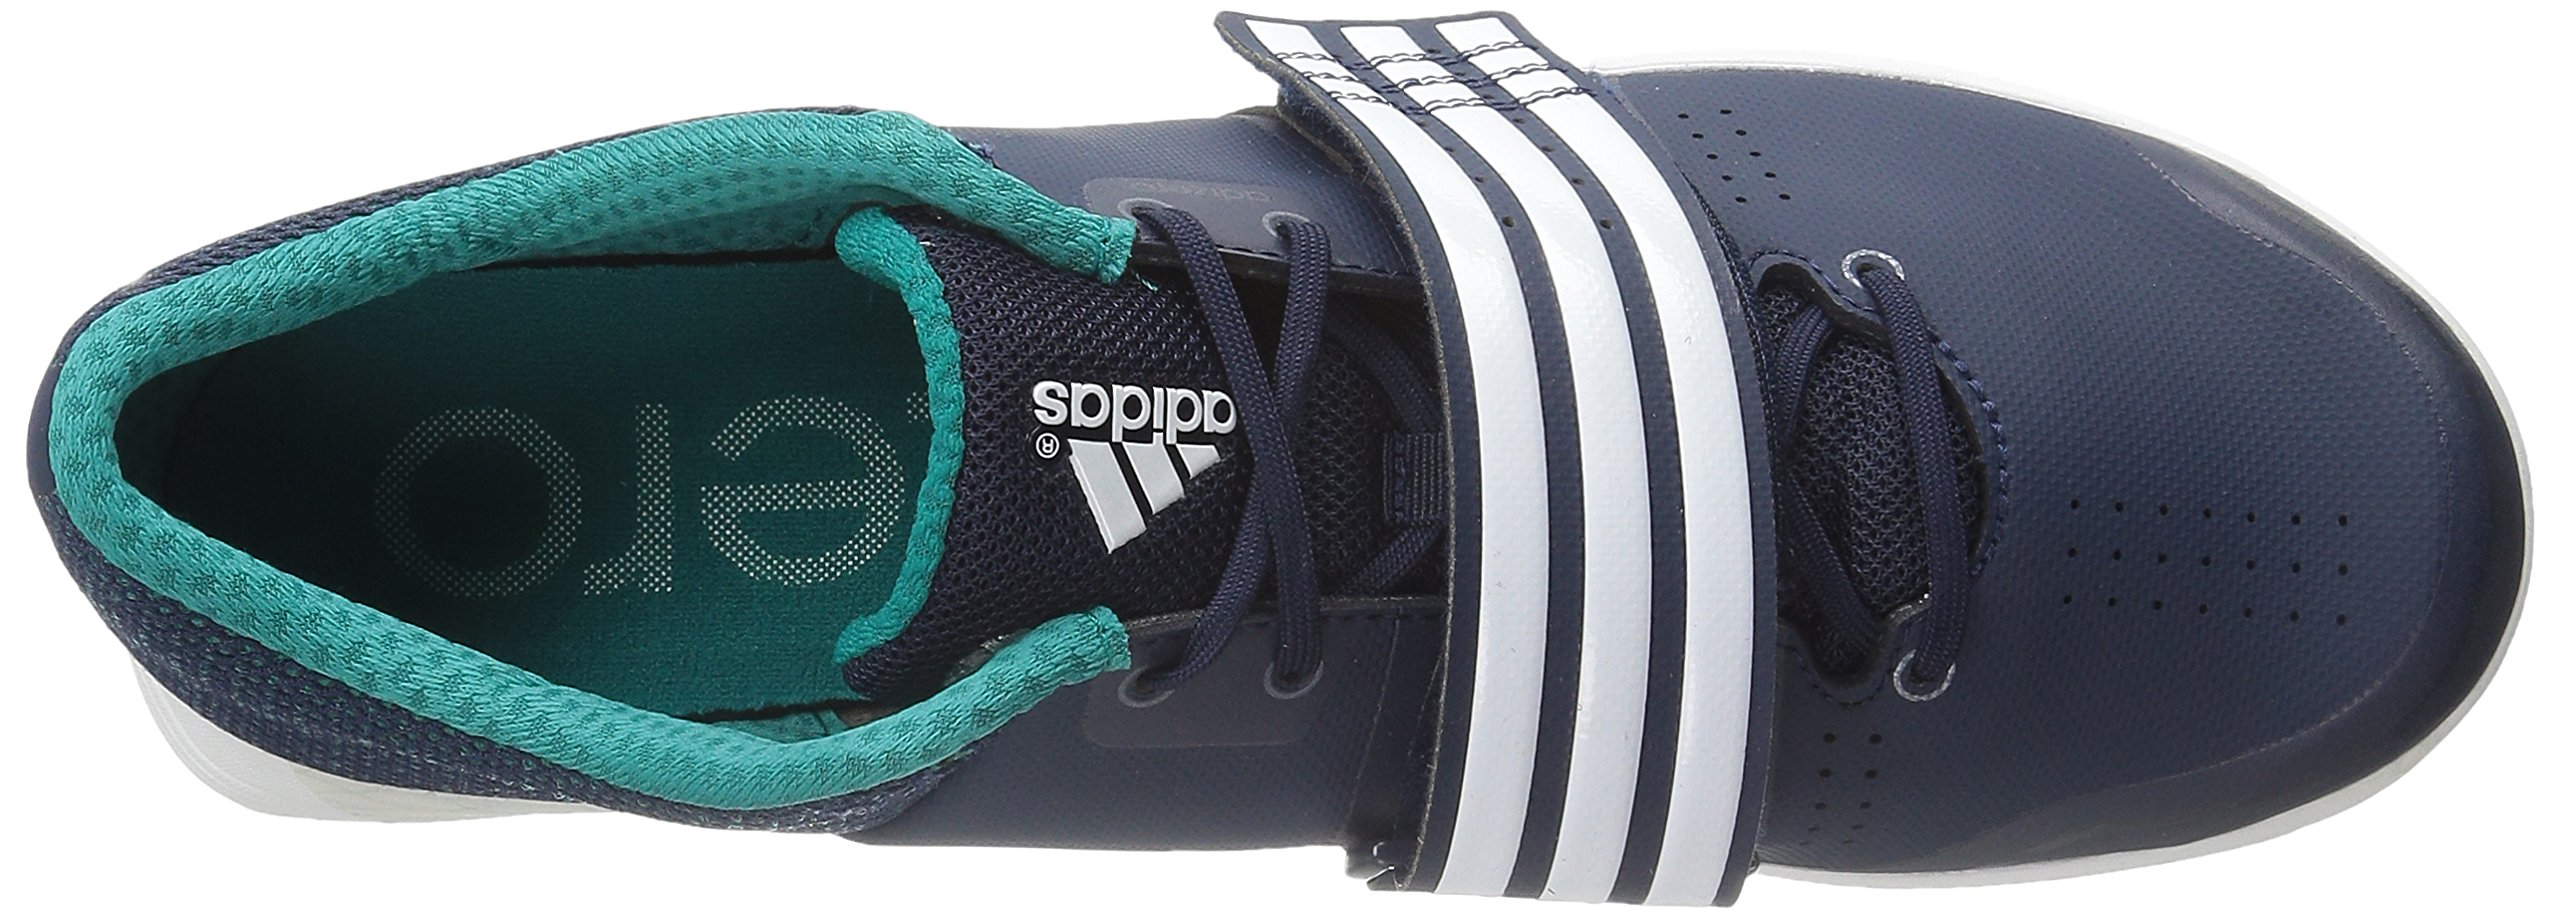 adidas Performance Women's Adizero TJ/PV Running Shoe with Spikes,Collegiate Navy/White/Green,15 M US by adidas (Image #8)